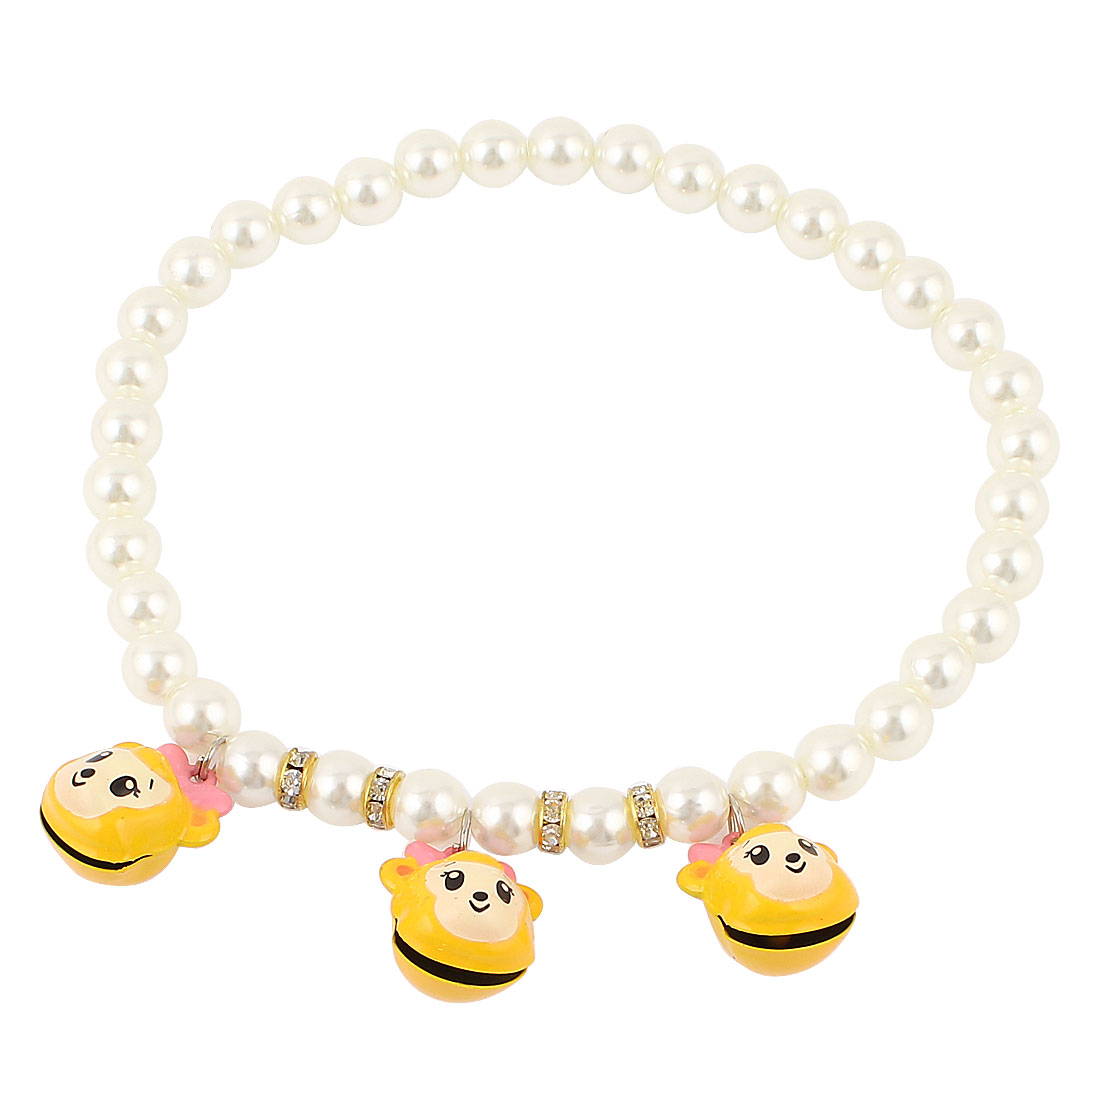 Metal Bell Pendant Rhinestone Accent Pet Dog Plastic Beads Imitation Pearls Collar Necklace White Yellow L